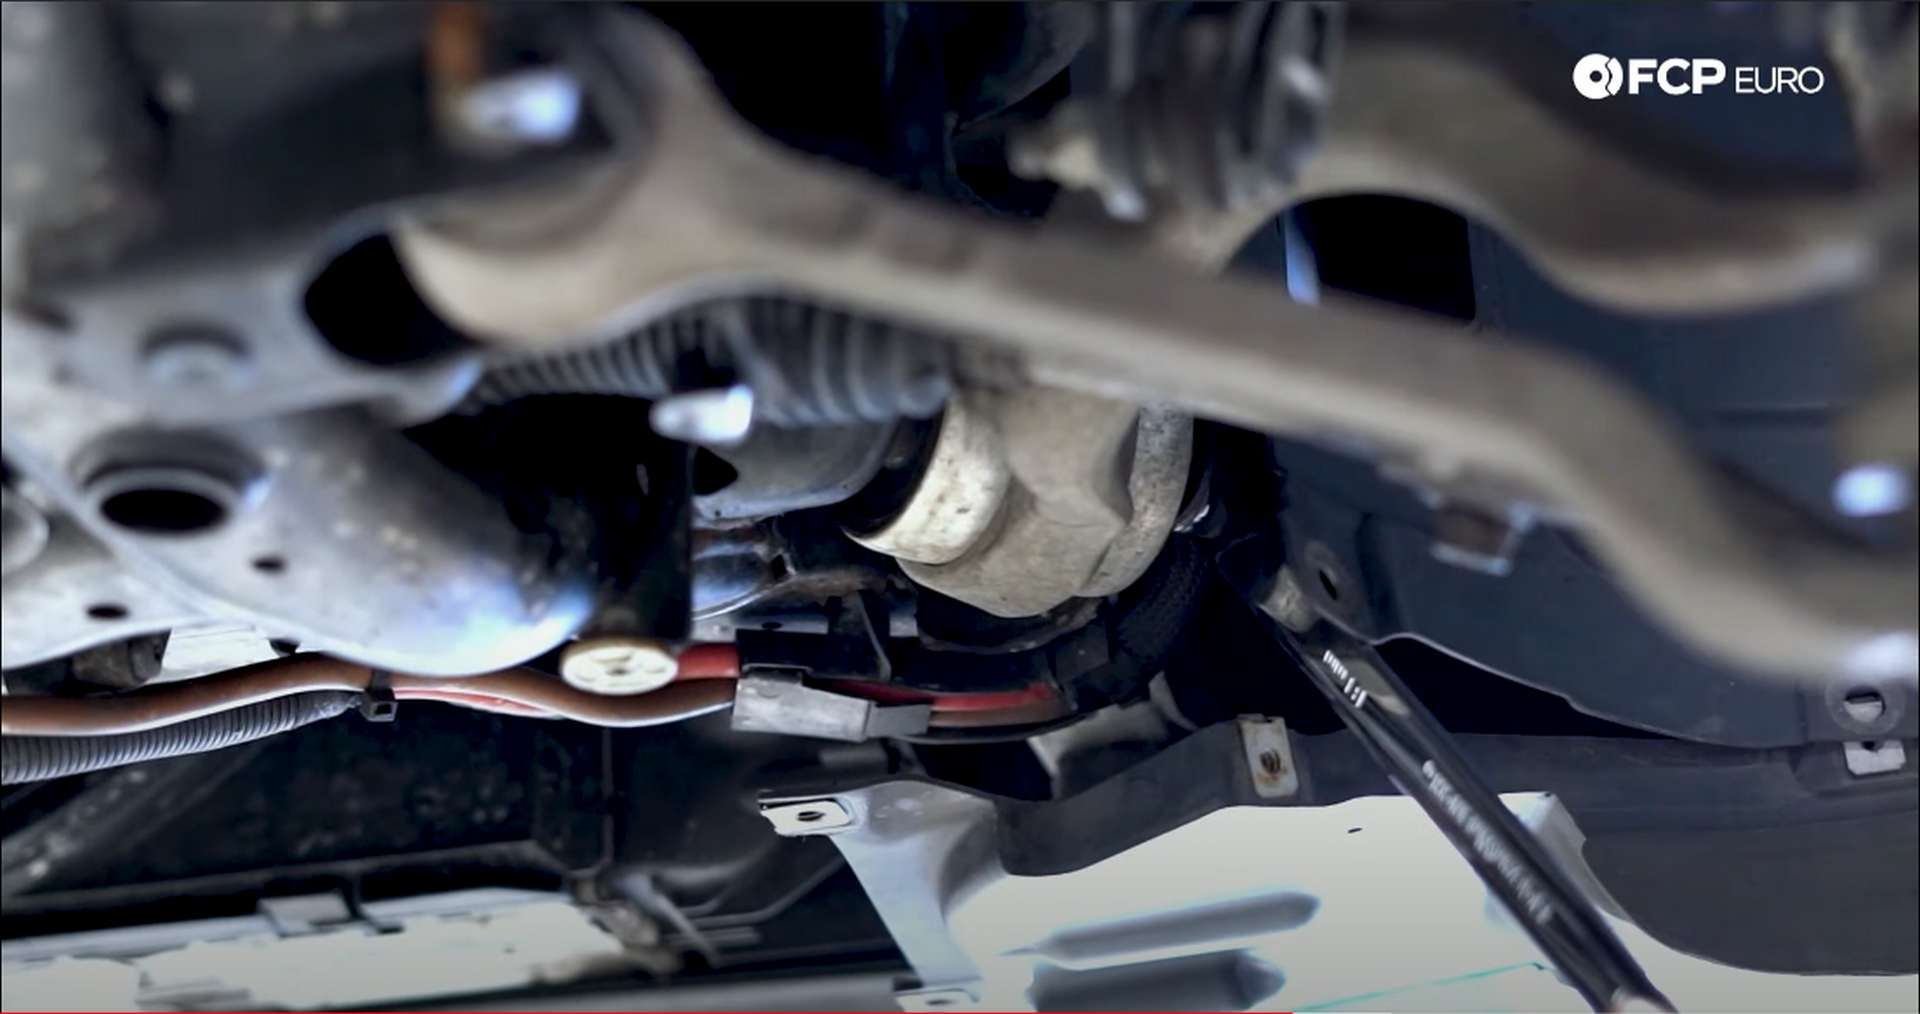 DIY BMW F30 Coilovers loosening thrust arm bolt